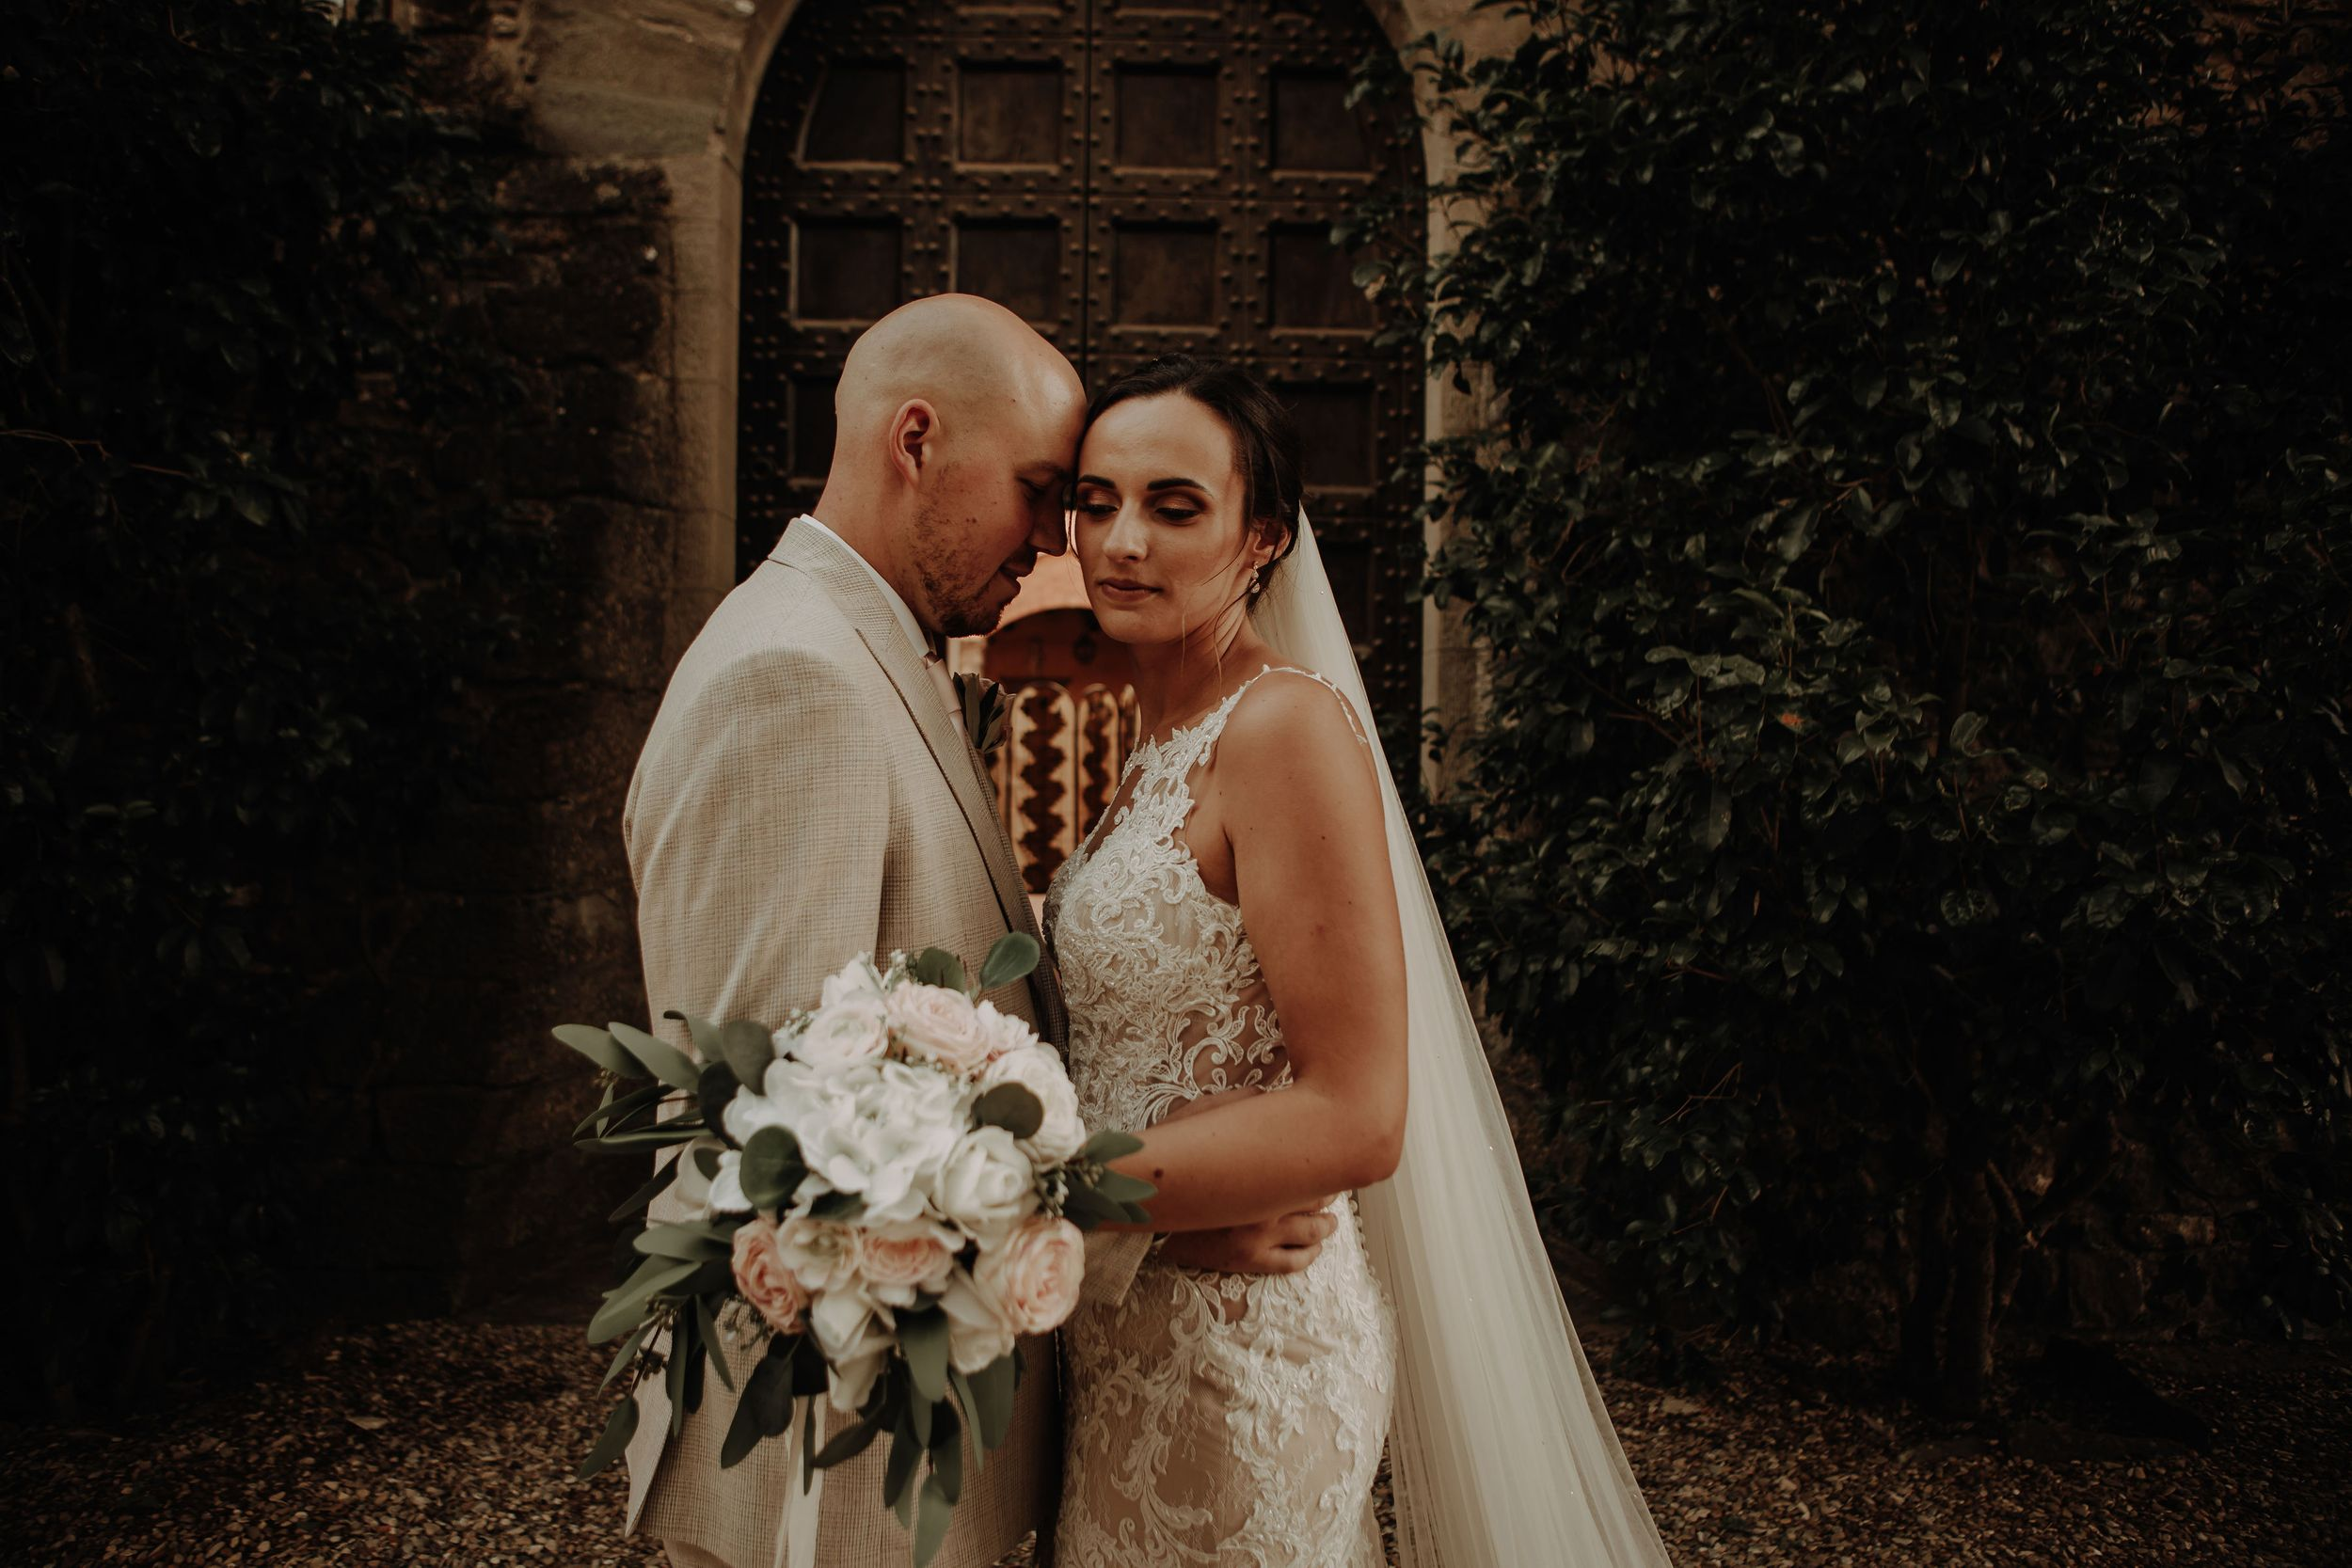 Bride and groom photograph outdoors at Castelo Il Palagio destination italian wedding in Tuscany